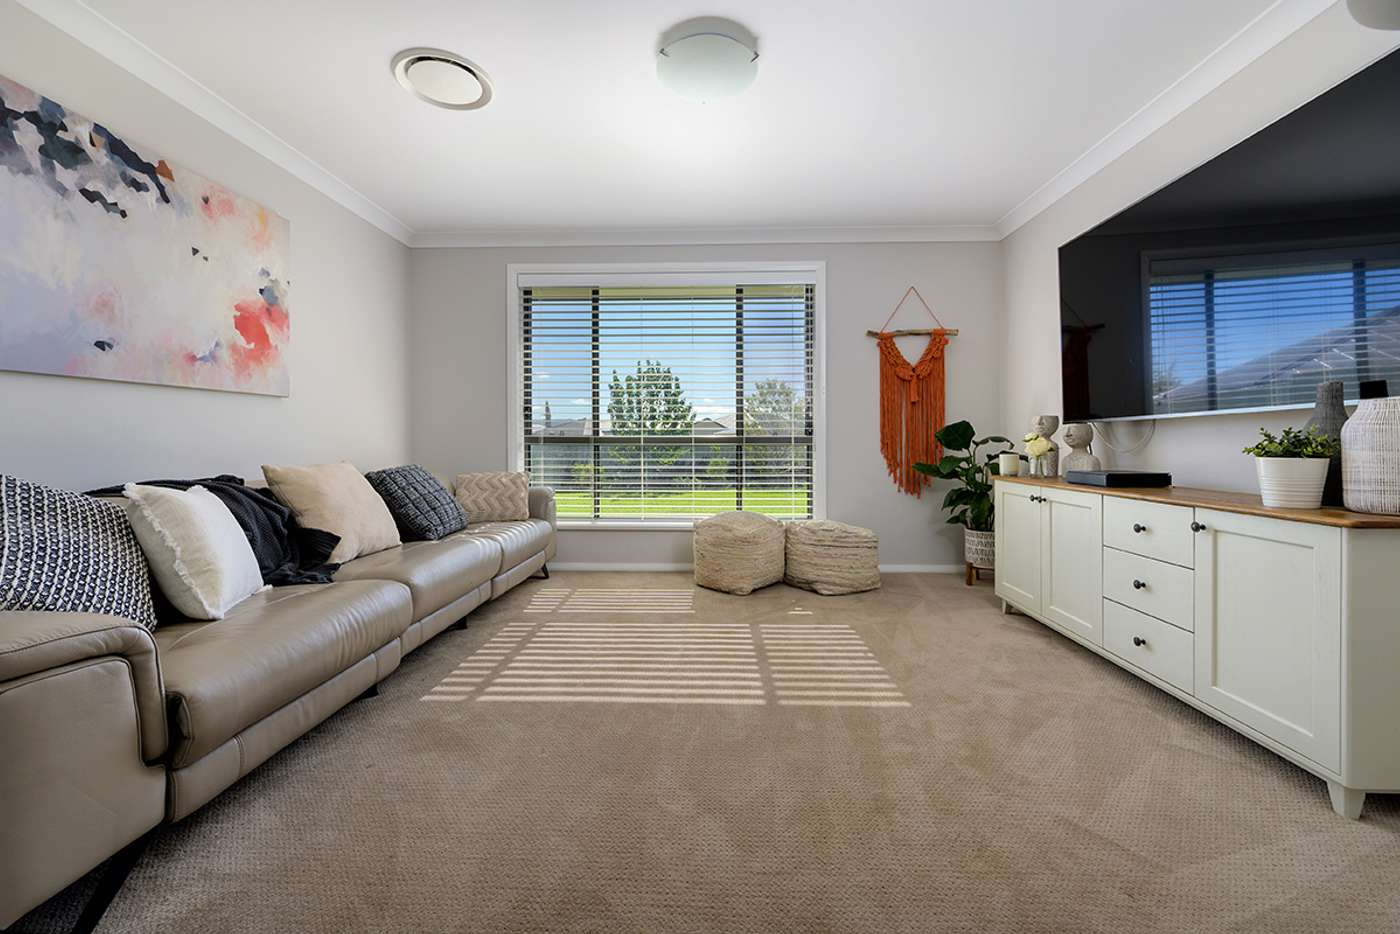 Fifth view of Homely house listing, 33A Kellett Drive, Mudgee NSW 2850